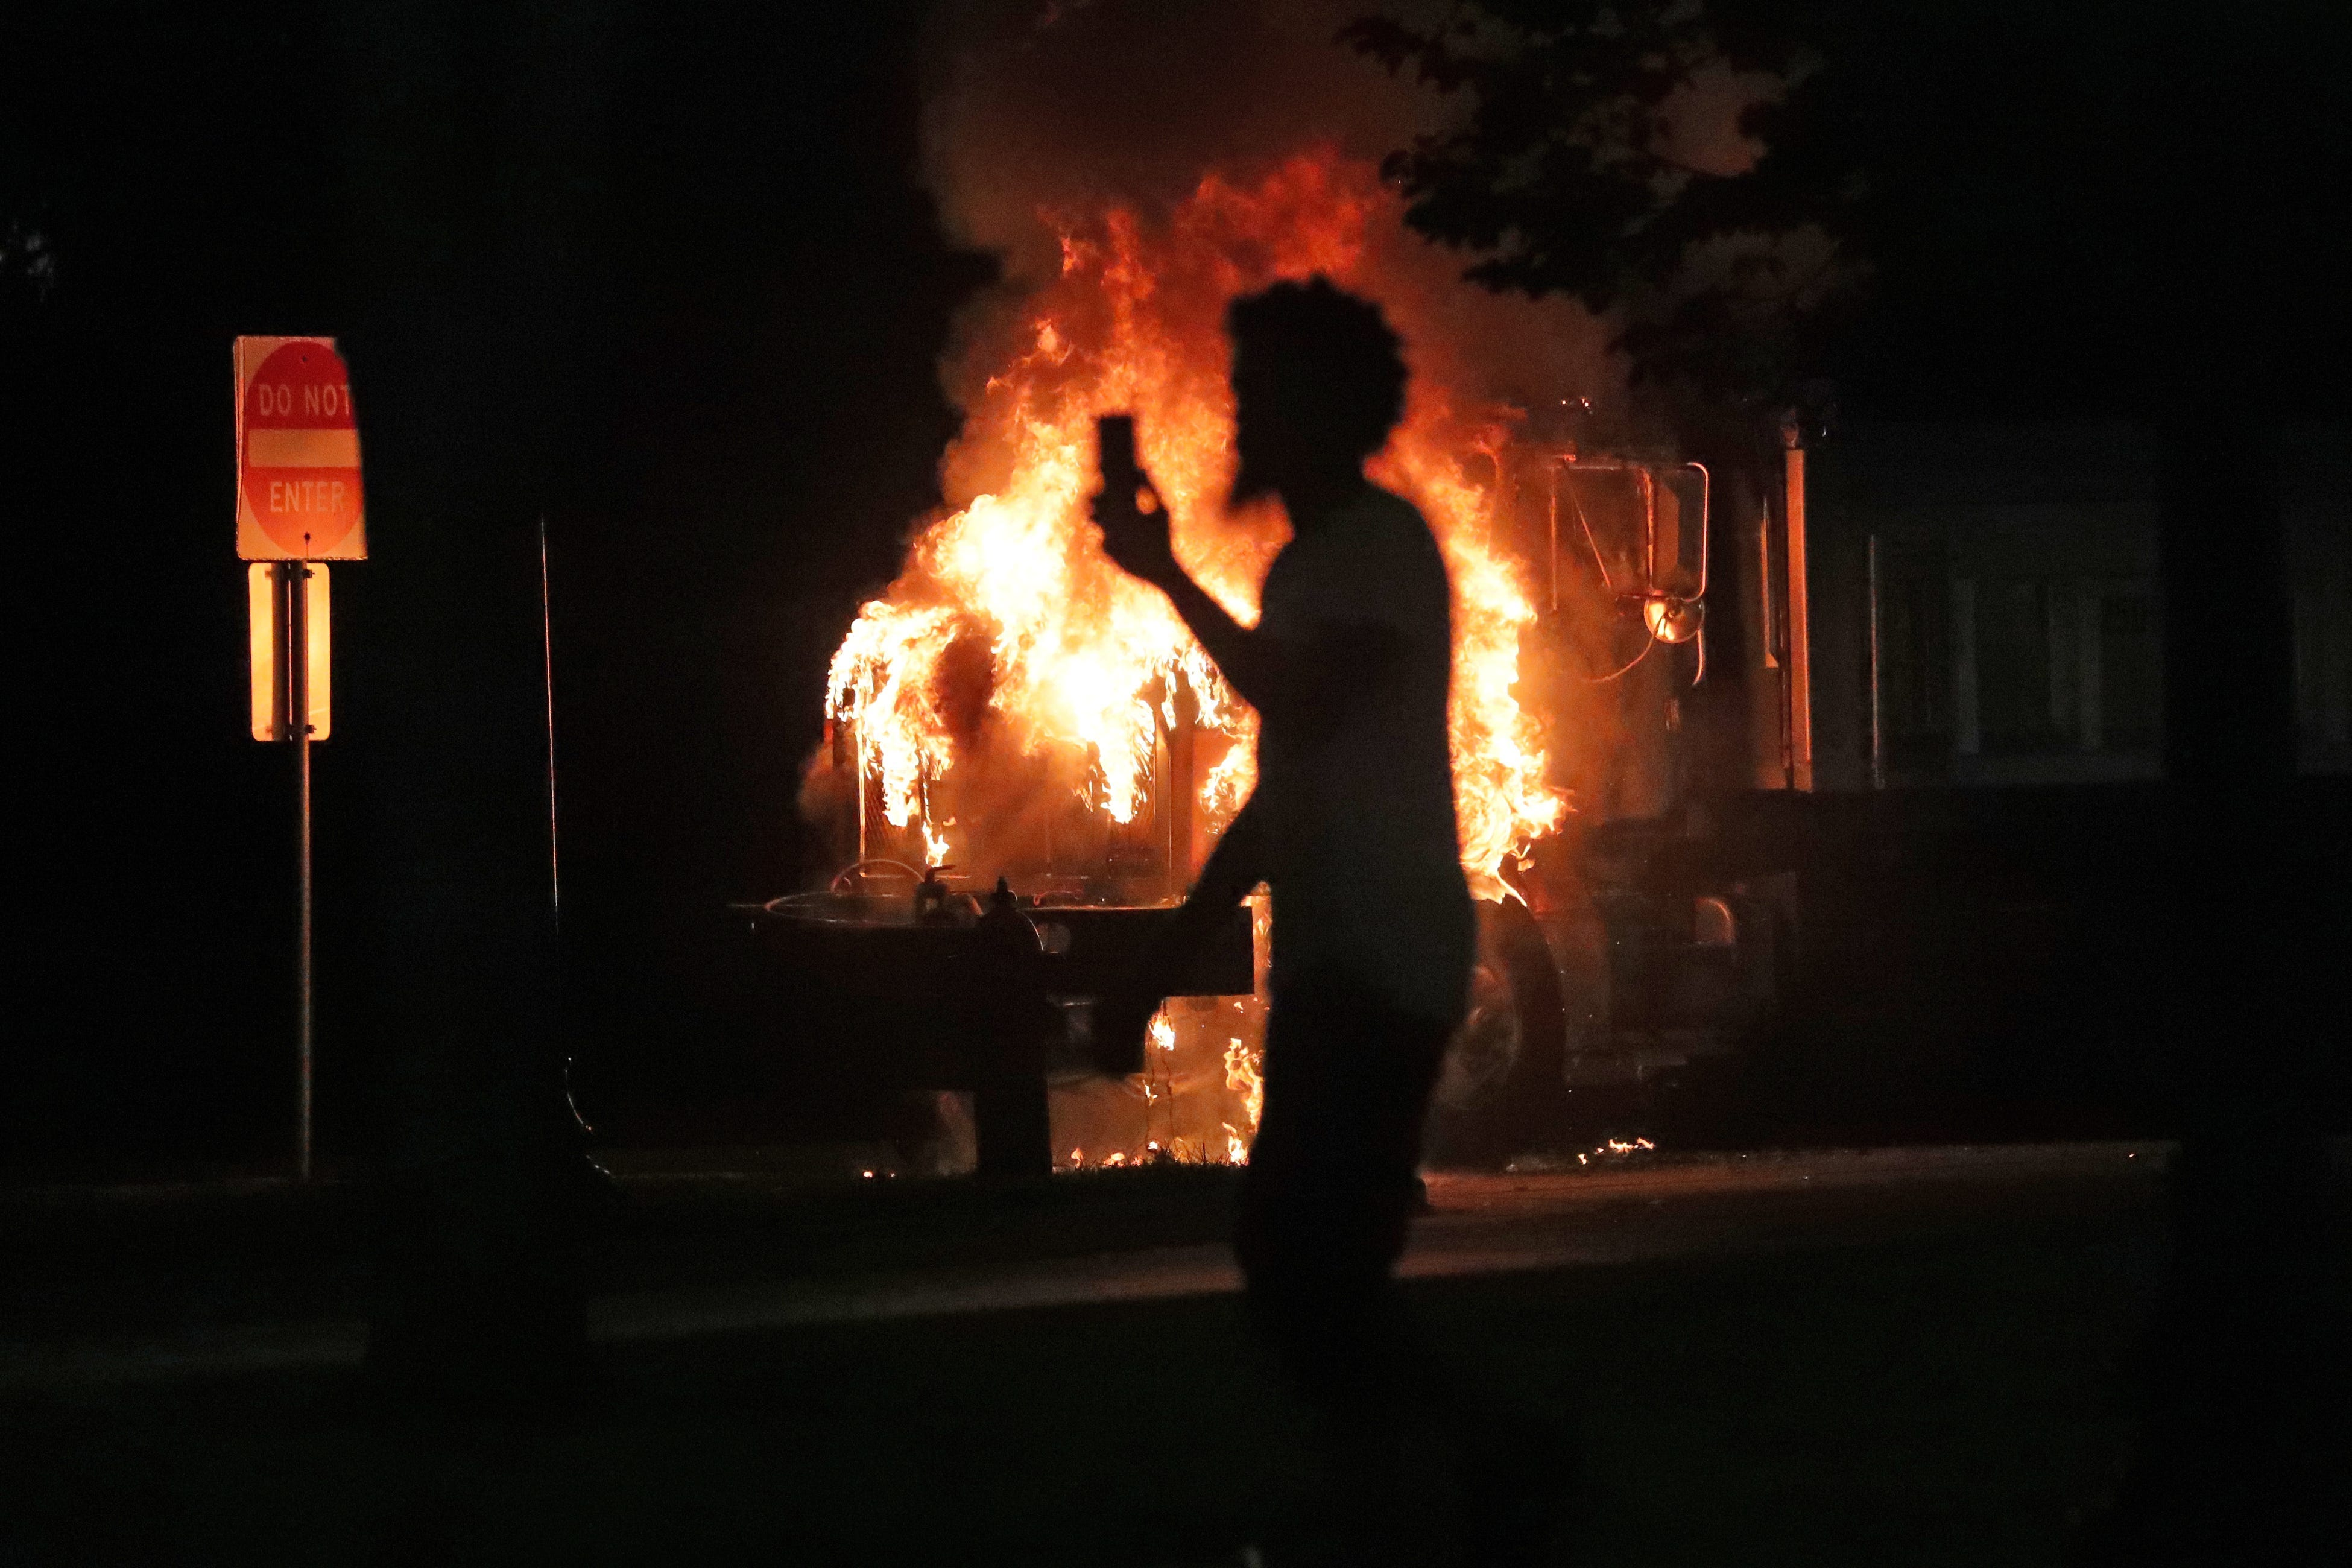 A man records a city truck on fire outside the Kenosha County Courthouse in Kenosha on Sunday, Aug. 23, 2020. Kenosha police shot a man Sunday evening, setting off unrest in the city. Protests broke out after police shot Jacob Blake, 29, a Black man.